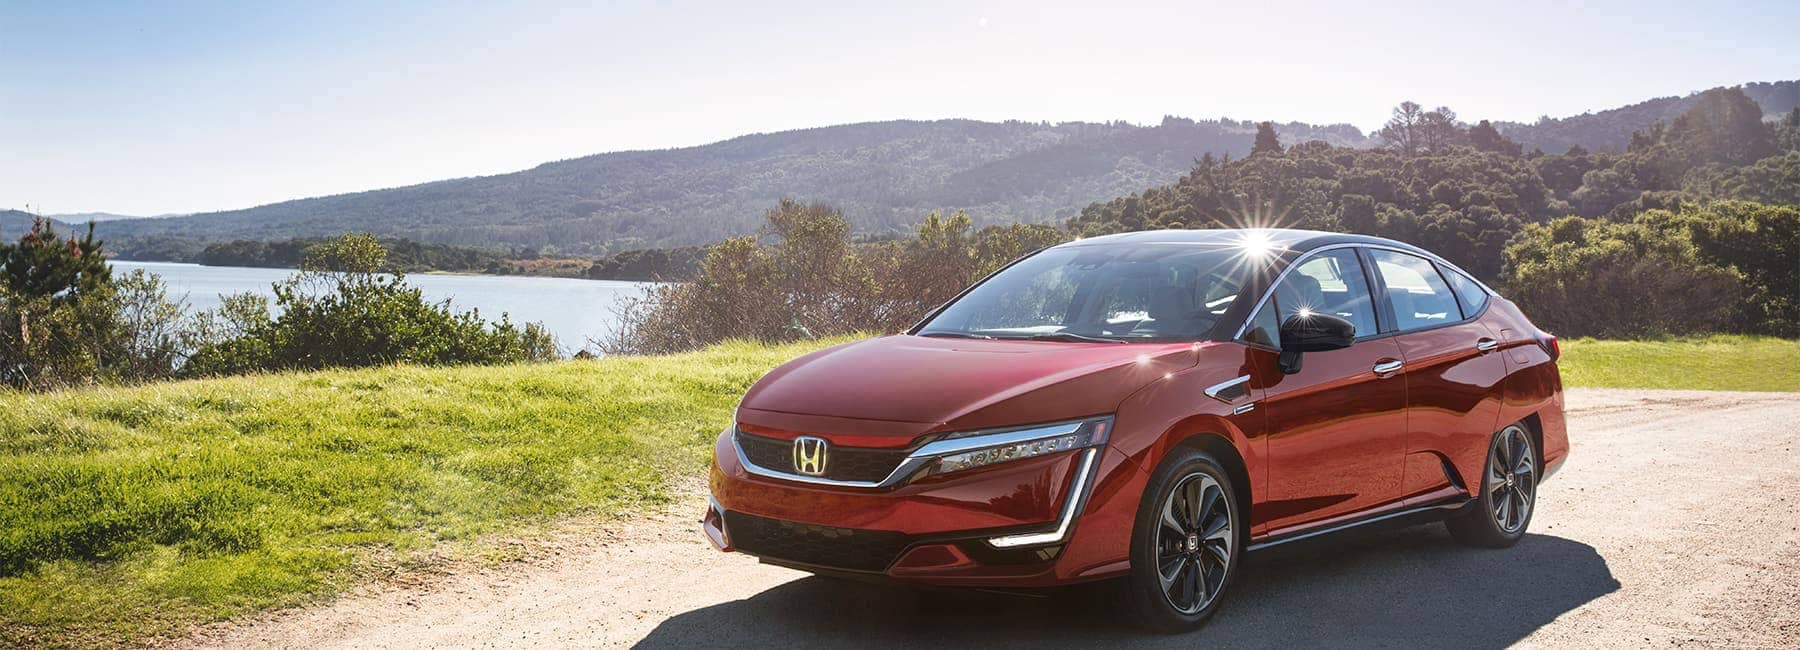 2020-honda-clarity-angle-view